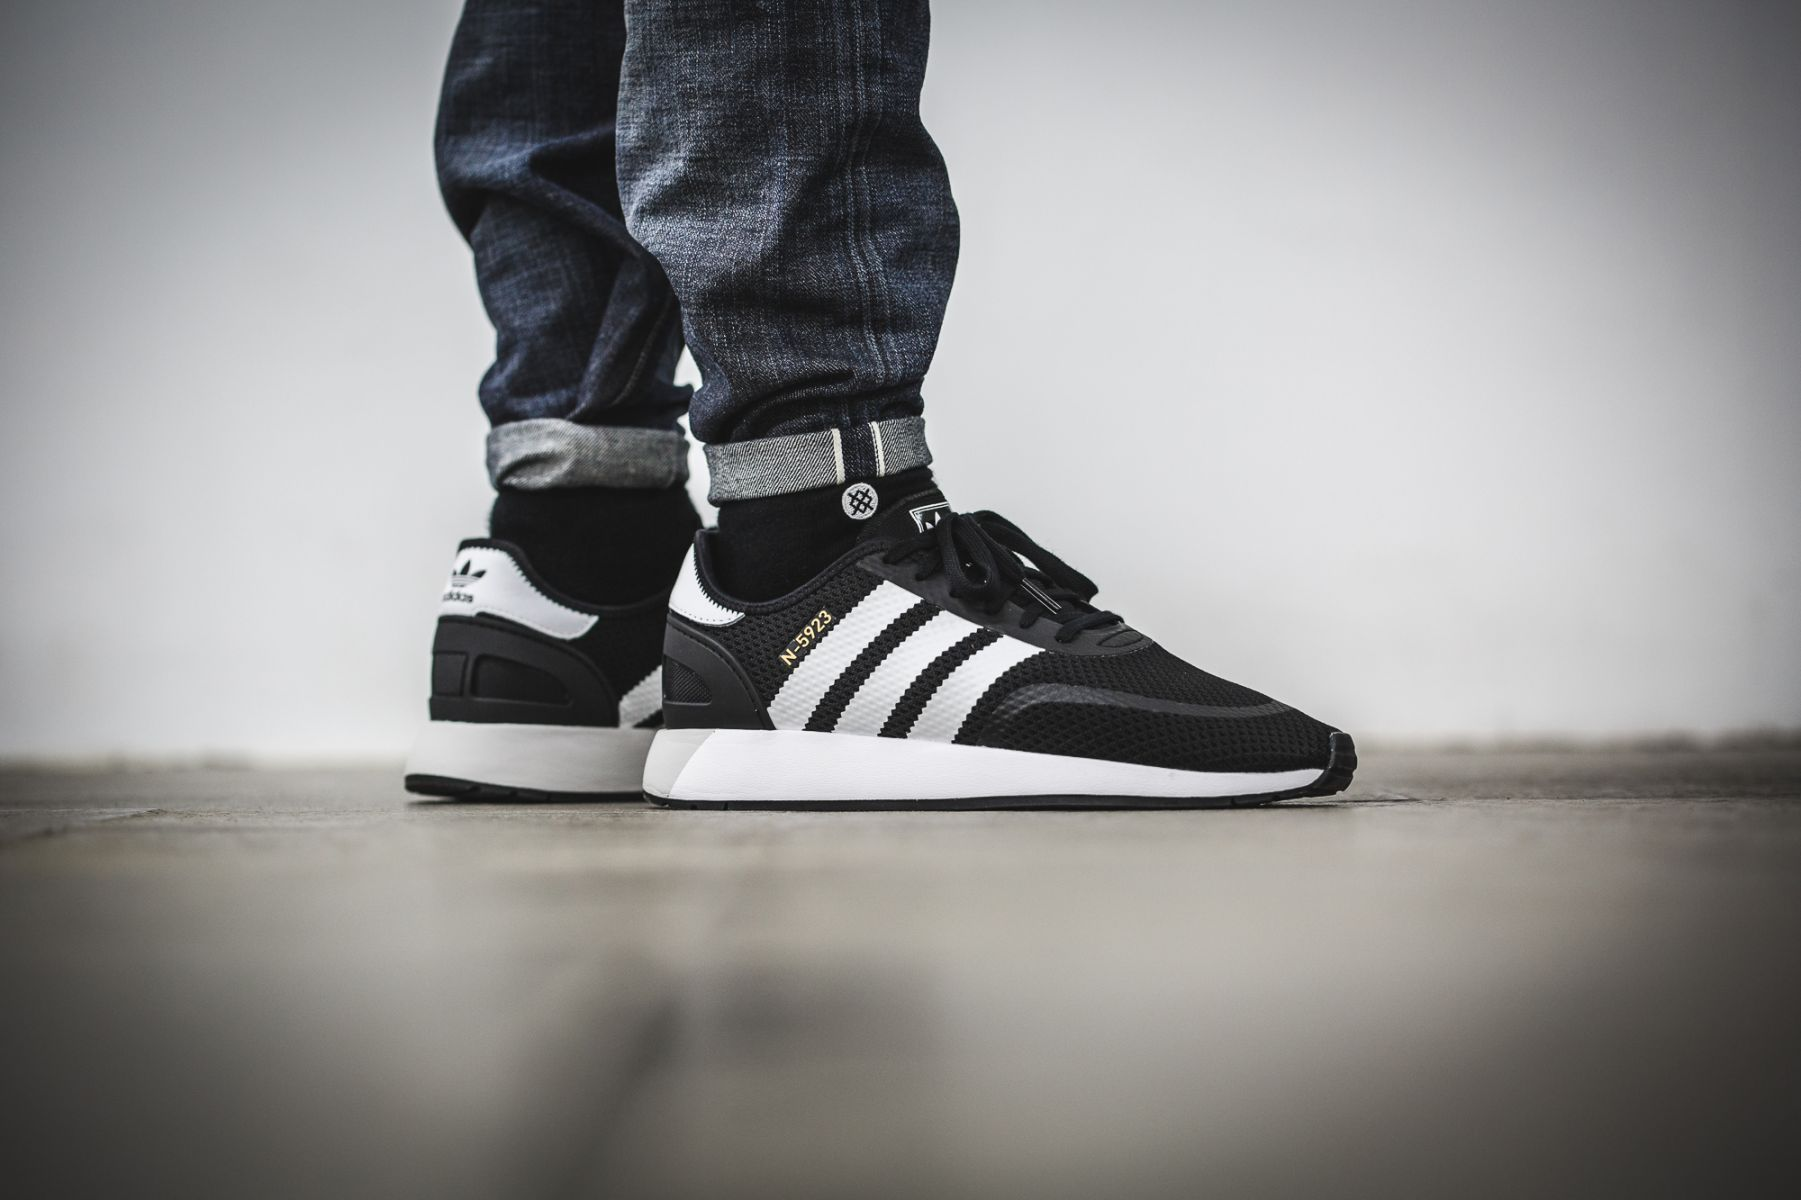 new concept 0c16f 332ae Adidas Iniki, Latest Shoe Trends, Adidas Originals, Sneaker, Kicks, Black  White